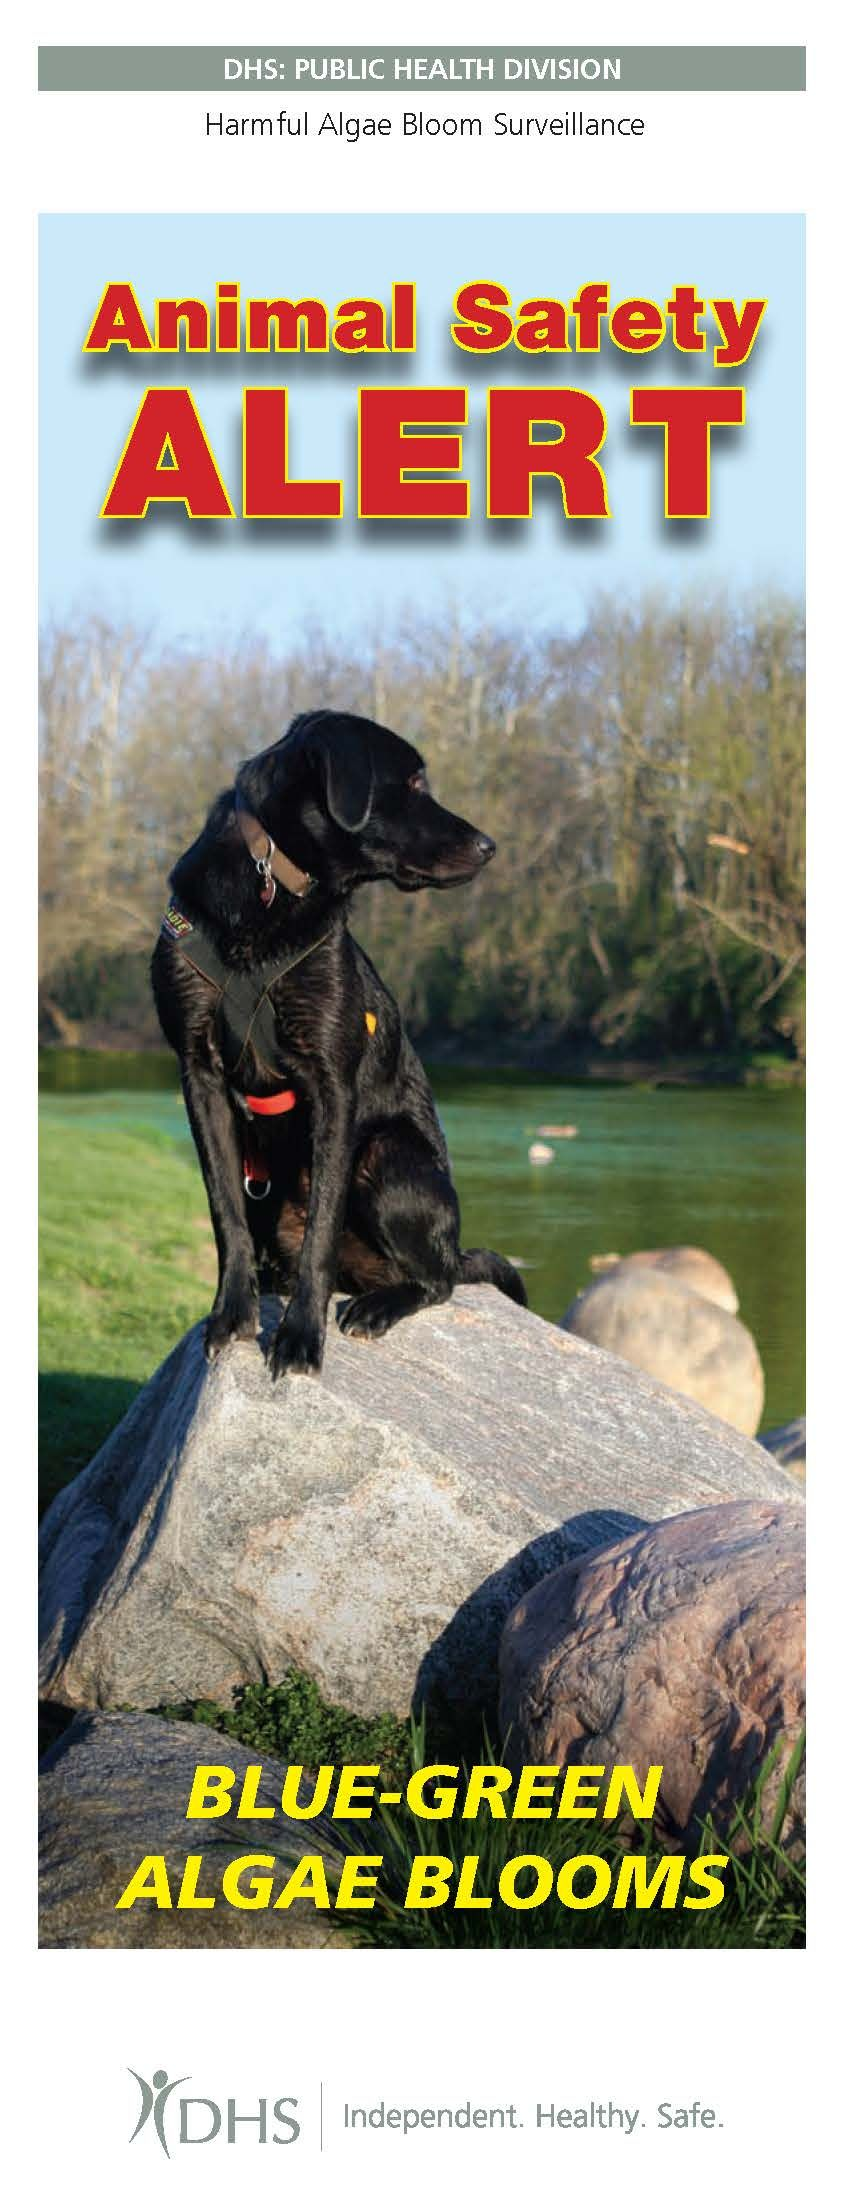 Animal safety alert bluegreen algae blooms, by the